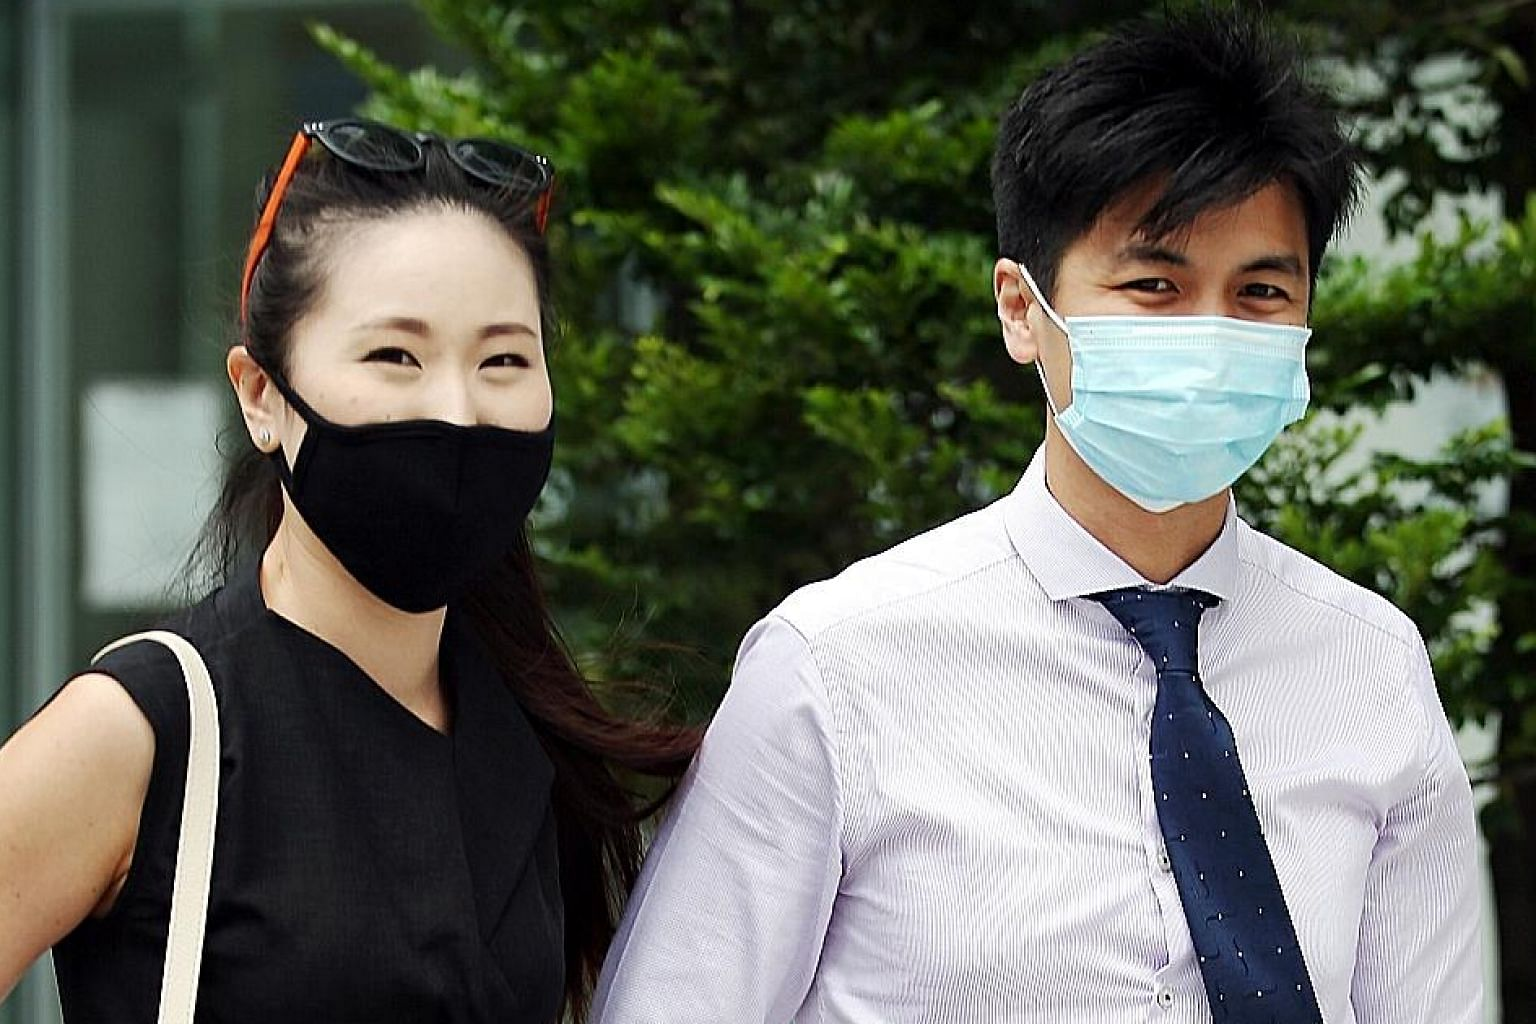 Marathoner Ashley Liew, 33, and wife Sandra Faustina Lee outside the State Court yesterday. He is accusing former teammate Soh Rui Yong of defaming him and is seeking $120,000 in damages. ST PHOTO: WONG KWAI CHOW